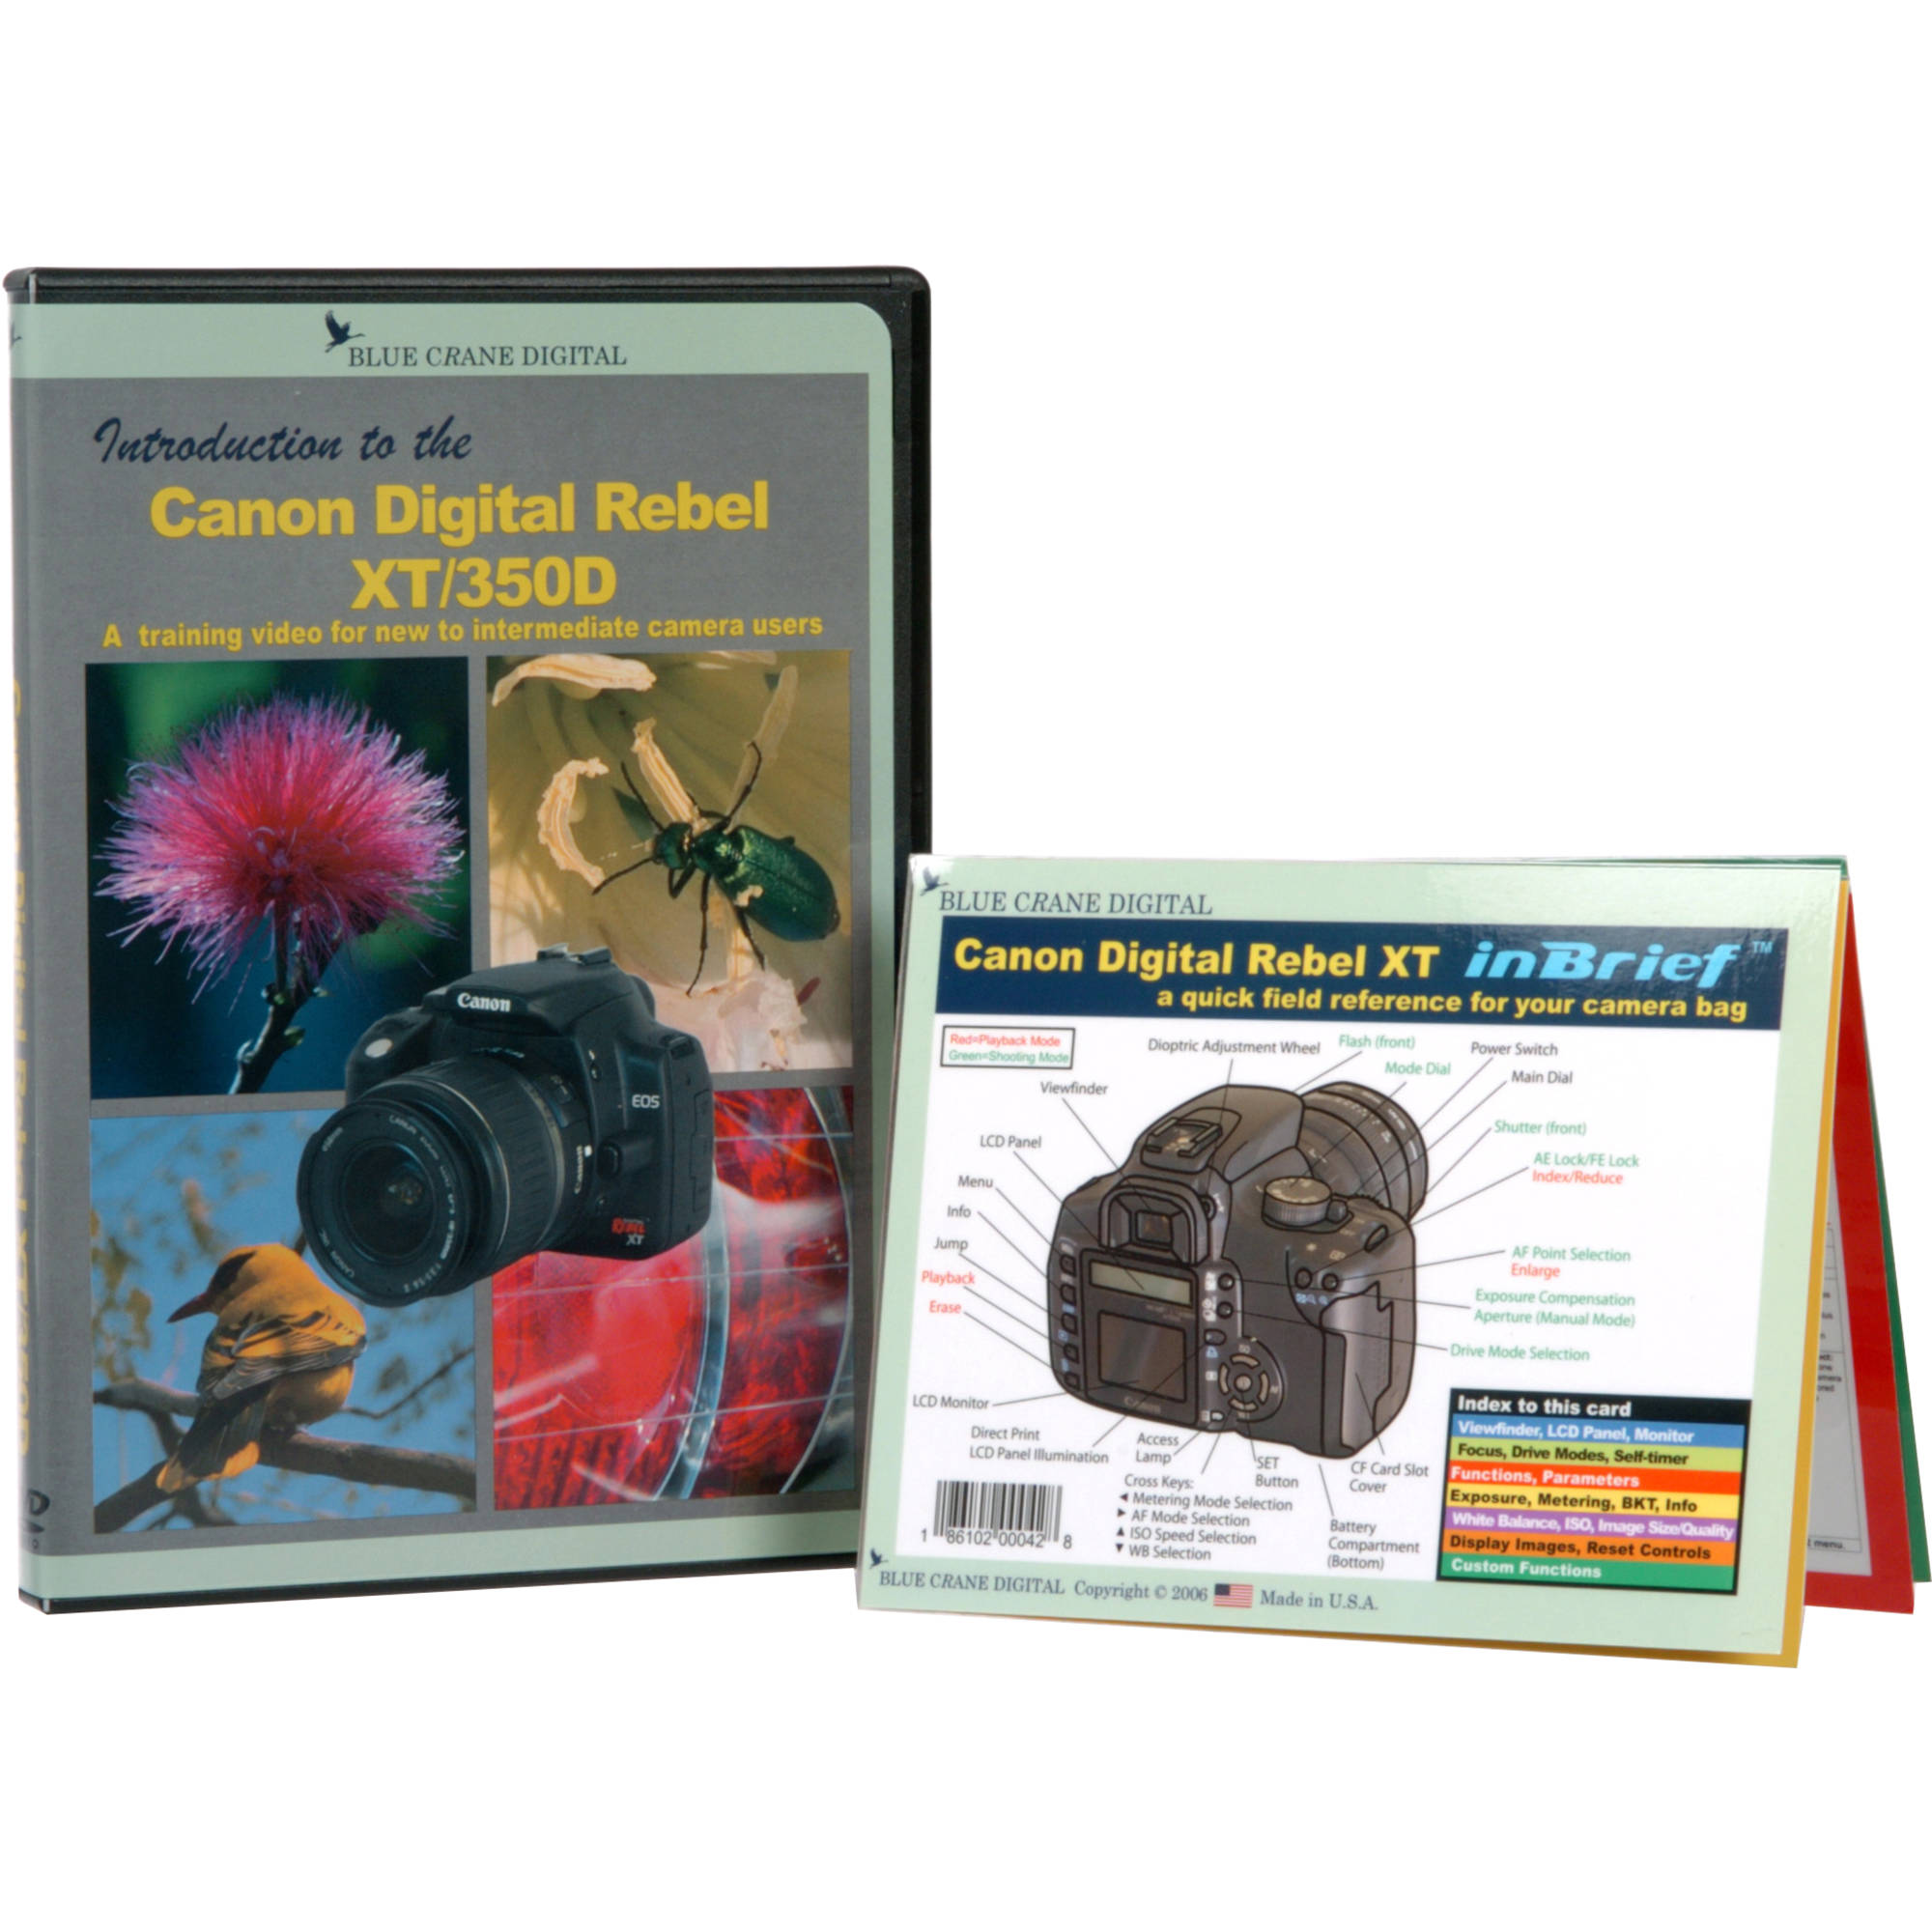 DVD and Guide: Combo Pack for the Canon EOS Rebel XT Digital SLR Camera